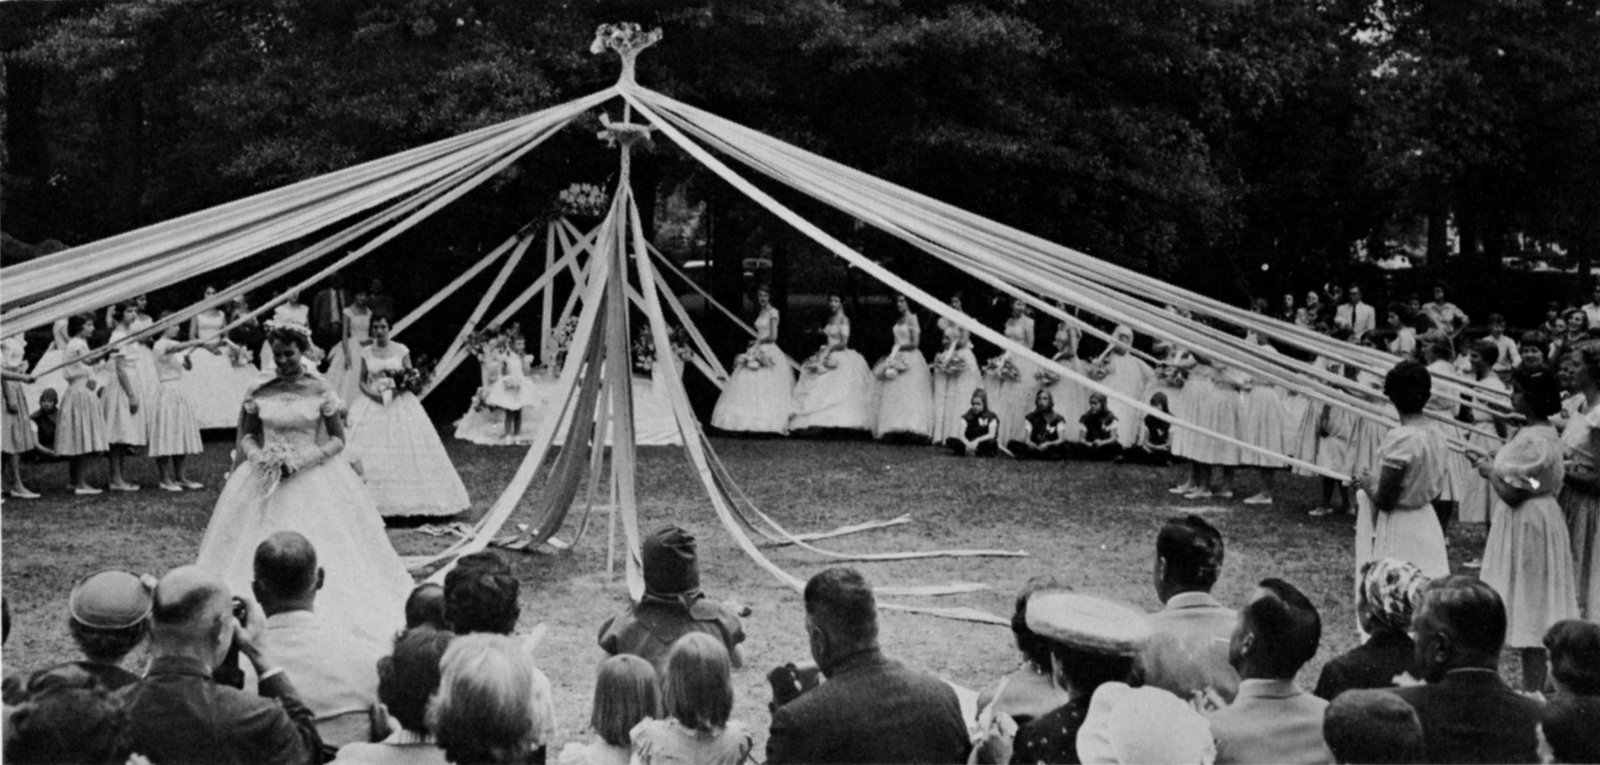 ""\""""The May Queen and Her Court"""" from the 1959 Torch, p. 69""1600|765|?|en|2|bc378ed73fa3e0b5b7fc8053537ef614|False|UNLIKELY|0.2800478935241699